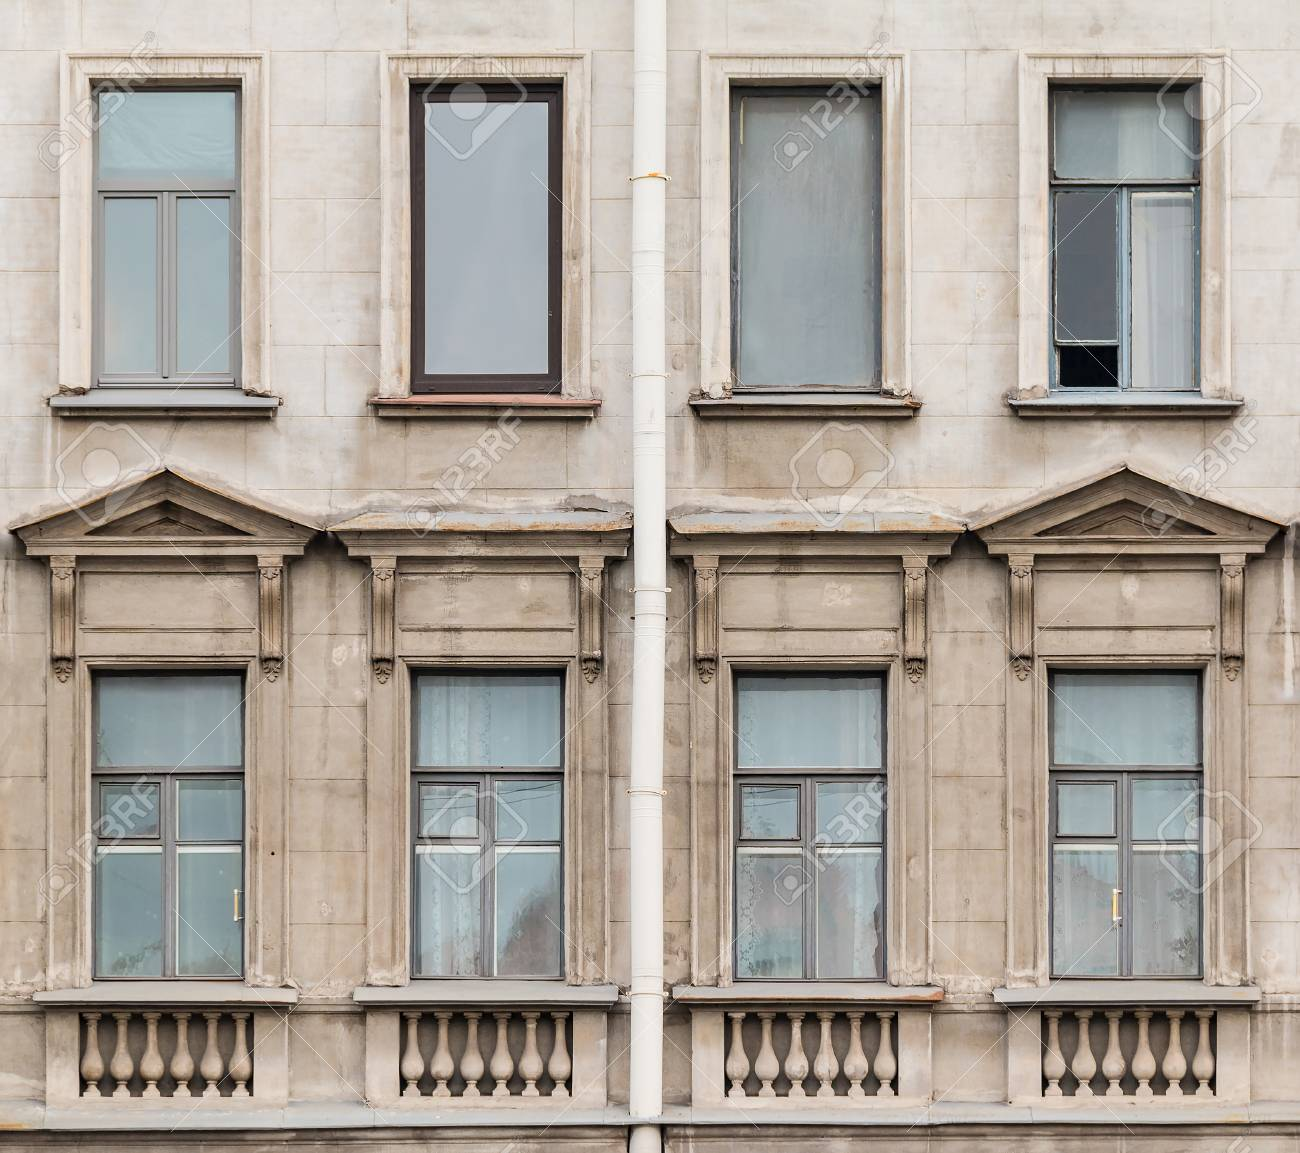 Several Windows In A Row On Facade Of The Urban Apartment Building Front  View, St